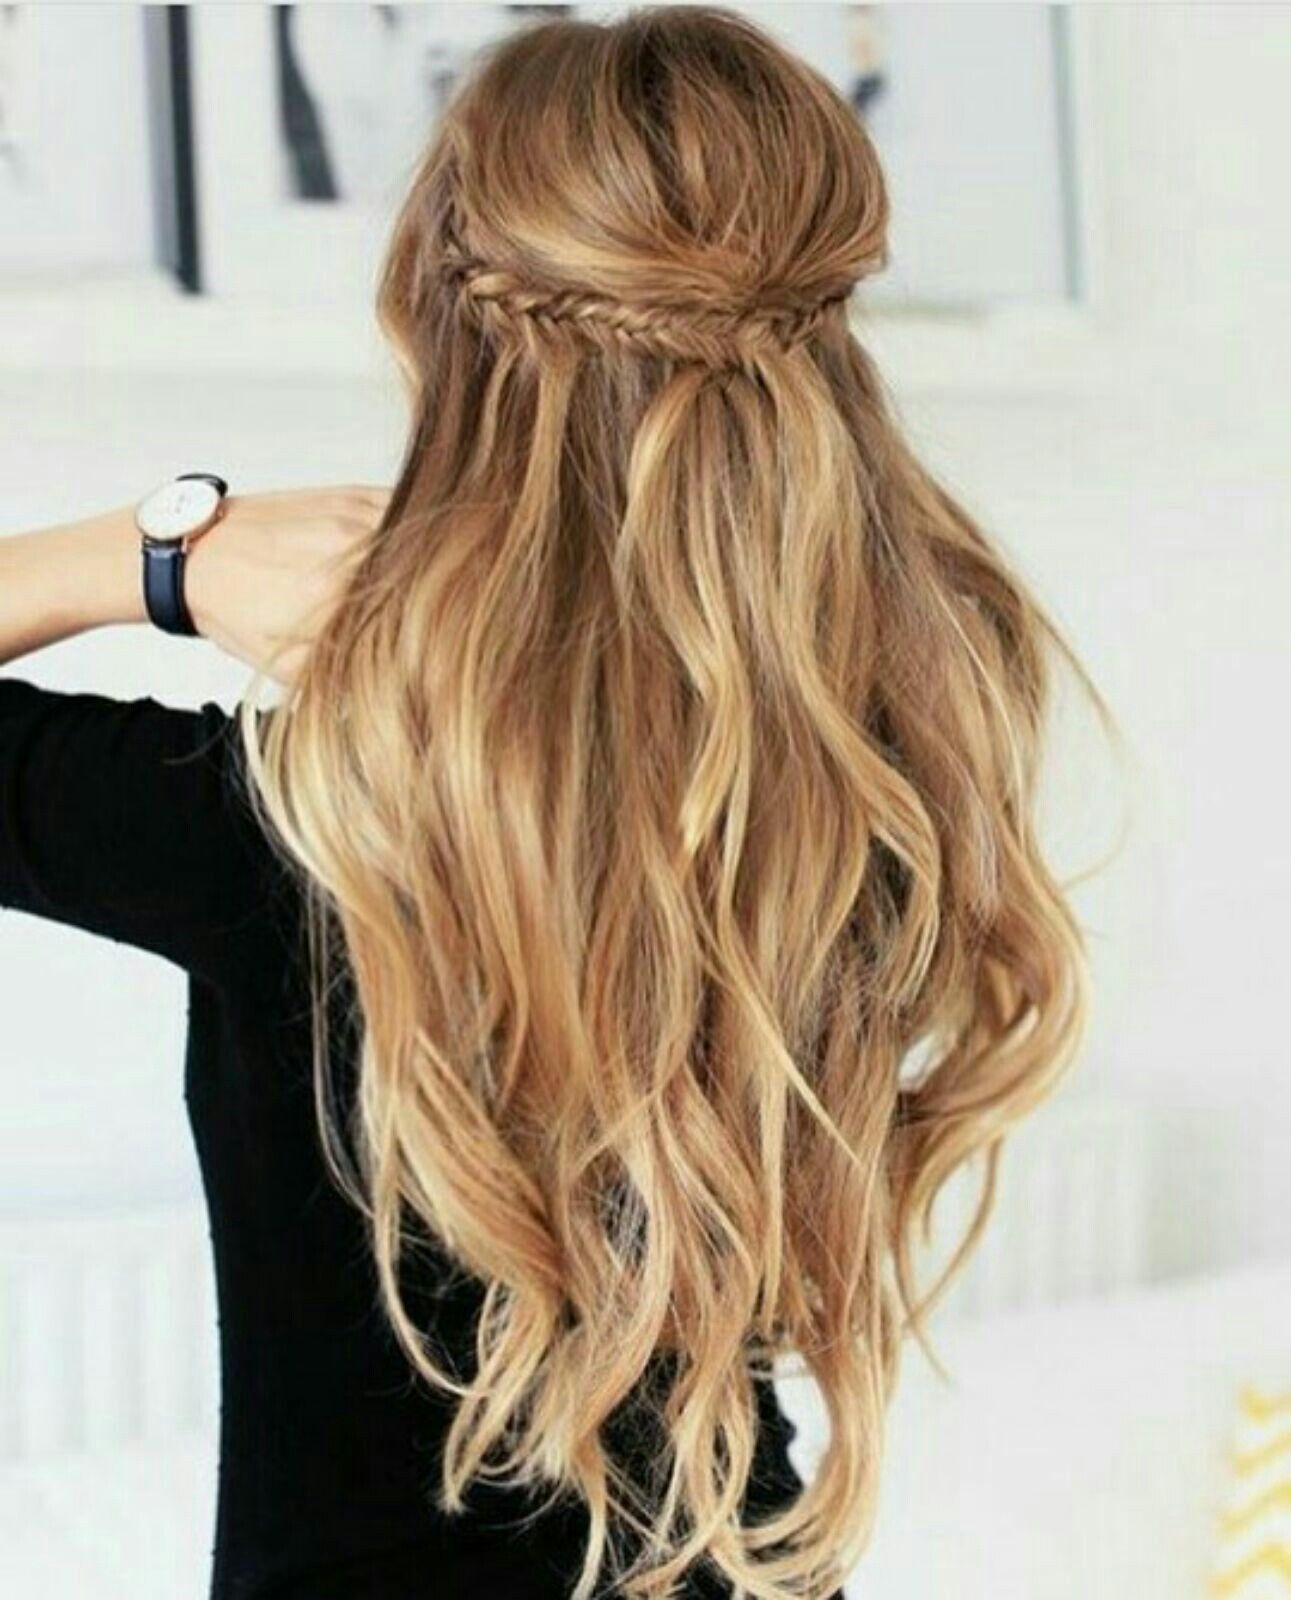 Hairstyles For Long Hair Loose Hairstyles Trends Hair Styles Wedding Hairstyles For Long Hair Hairstyle